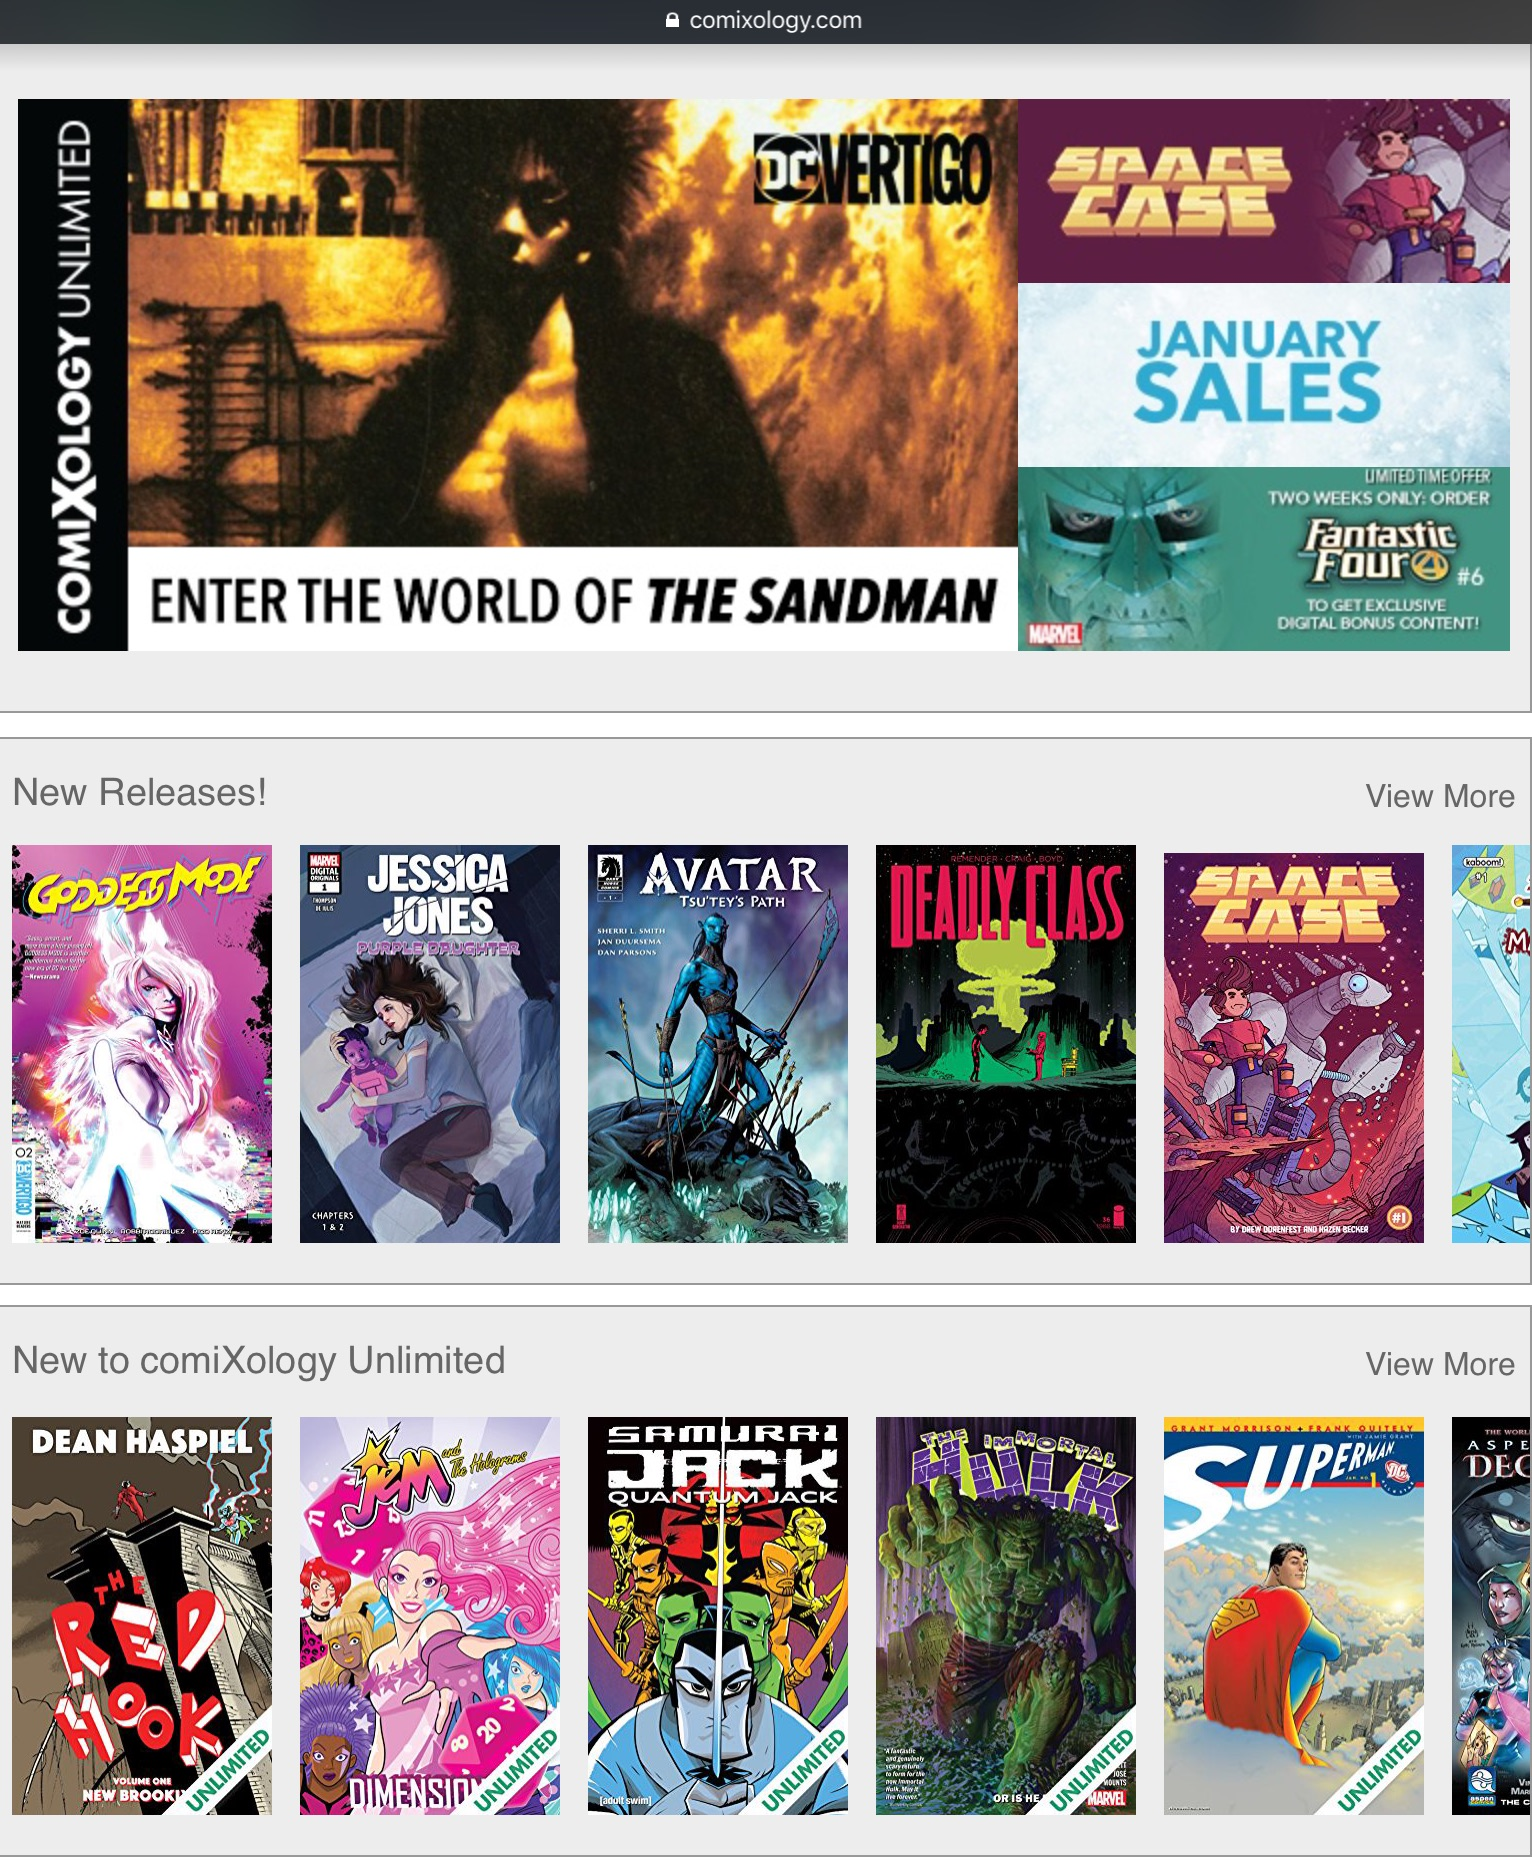 Digital Comics - The best comics in the world at your fingertips.